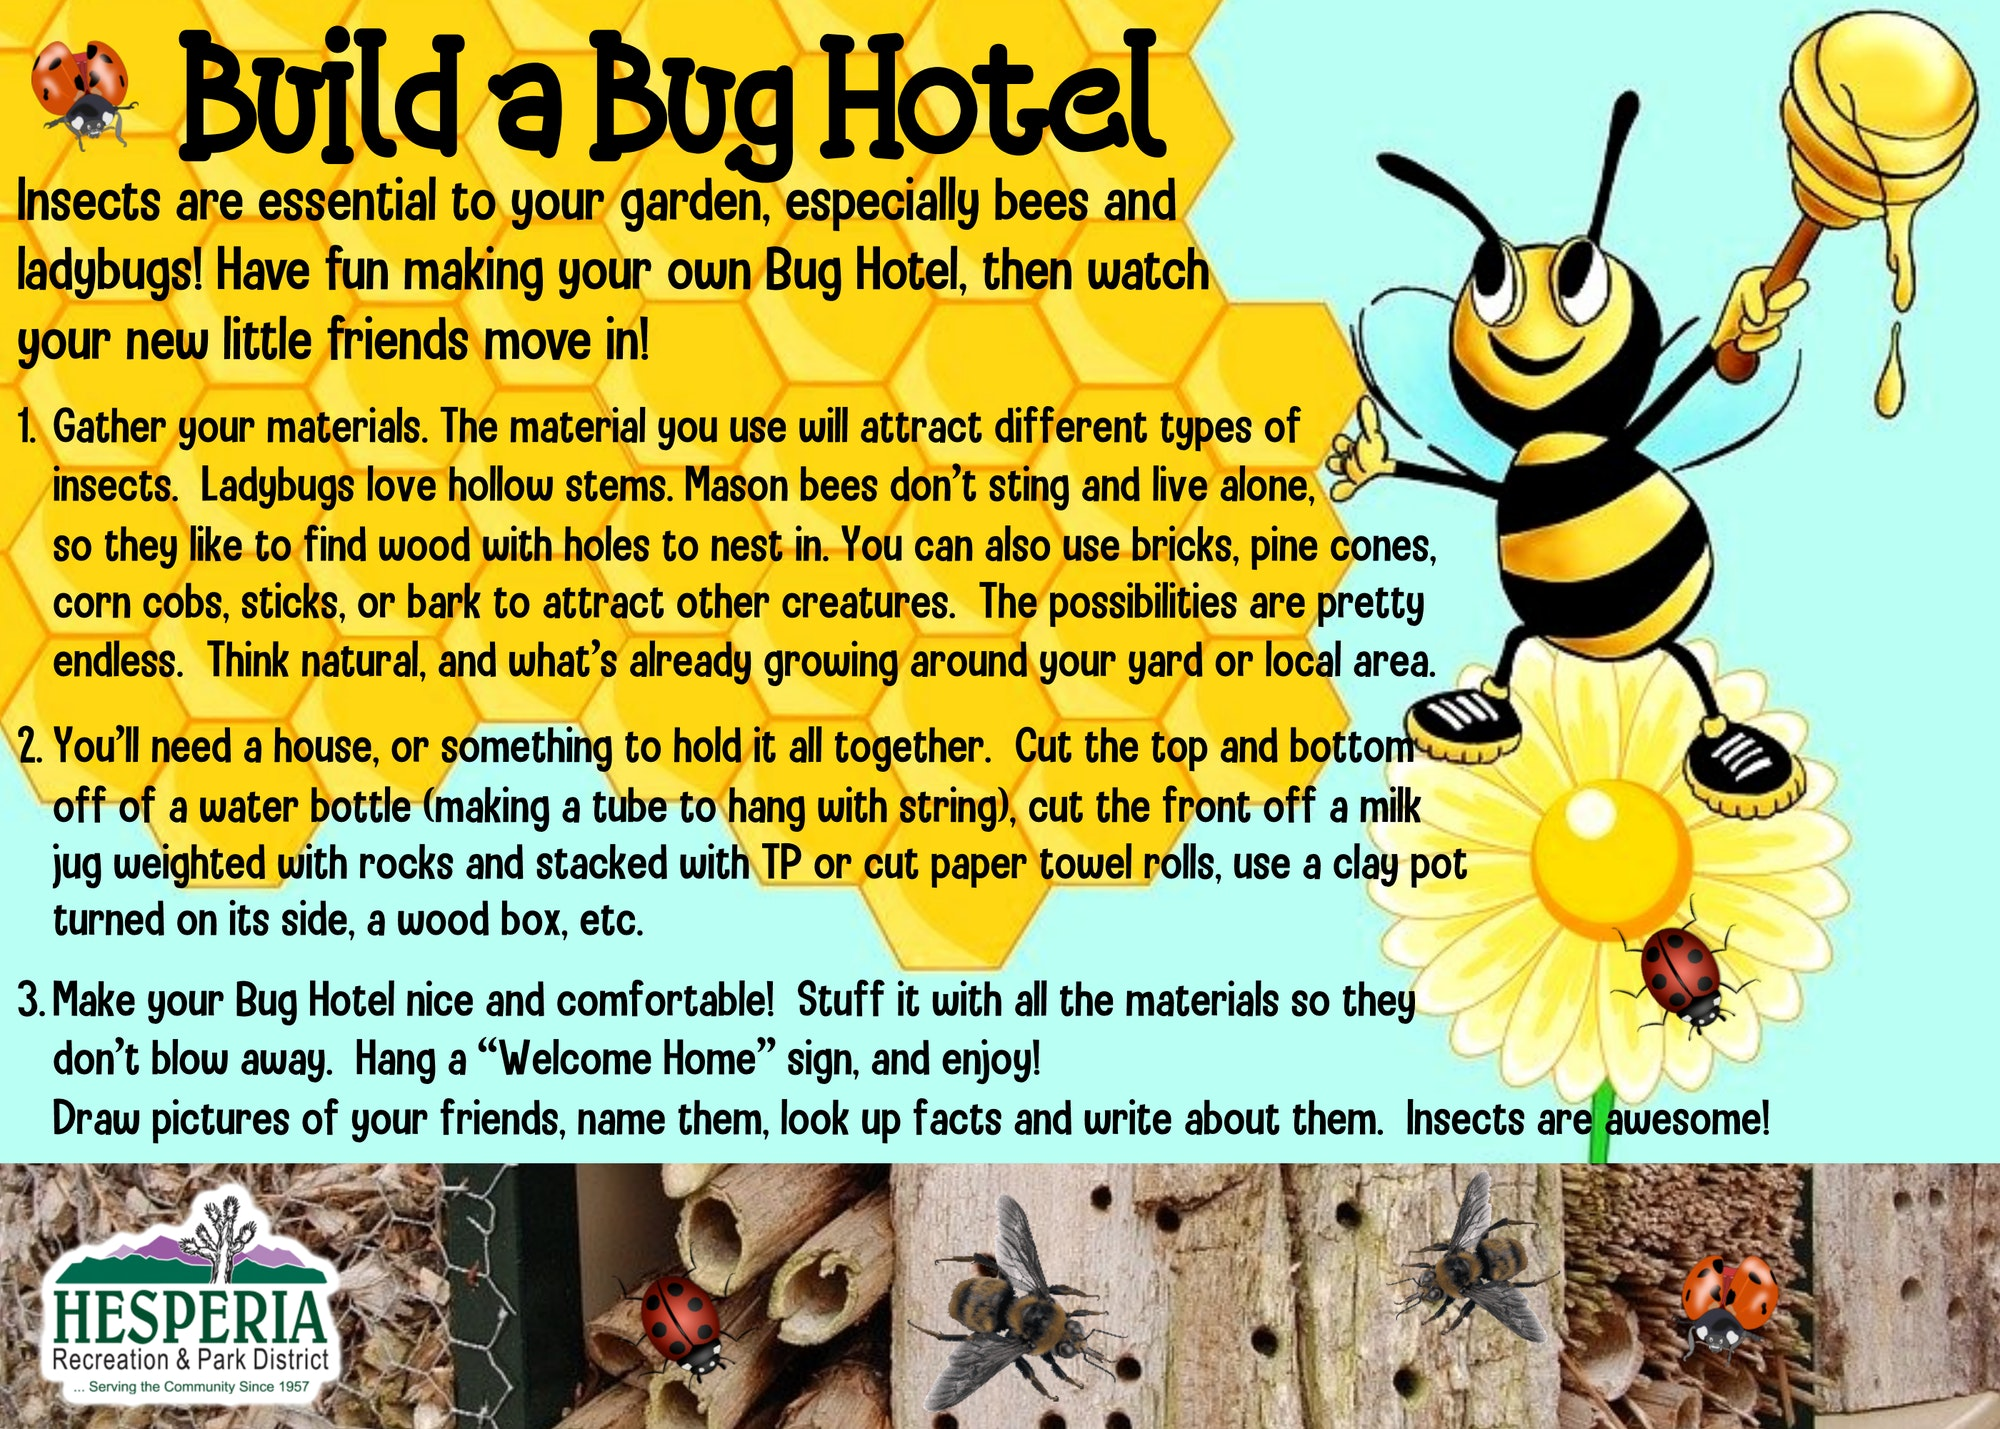 """Build a Bug Hotel. Insects are essential to your garden, especially bees and ladybugs! Have fun making your own Bug Hotel, then watch your new little friends move in! 1. Gather your materials. The material you use will attract different types of insects. Ladybugs love hollow stems. Mason bees don't sting and live alone, so they like to find wood with holes to nest in. You can also use bricks, pine cones, corn cobs, sticks, or bark to attract other creatures. The possibilities are pretty endless. Think natural, and what's already growing around your yard or local area. 2. You'll need a house, or something to hold it all together. Cut the top and bottom off of a water bottle (making a tube to hang with string), cut the front off a milk jug weighted with rocks and stacked with TP or cut paper towel rolls, use a clay pot turned on its side, a wood box, etc. 3. Make or Bug Hotel nice and comfortable! Stuff it with all the materials so they don't blow away. Hang a """"Welcome Home"""" sign, and enjoy! Draw pictures of your friends, name them, look up facts and write about them. Insects are awesome!"""